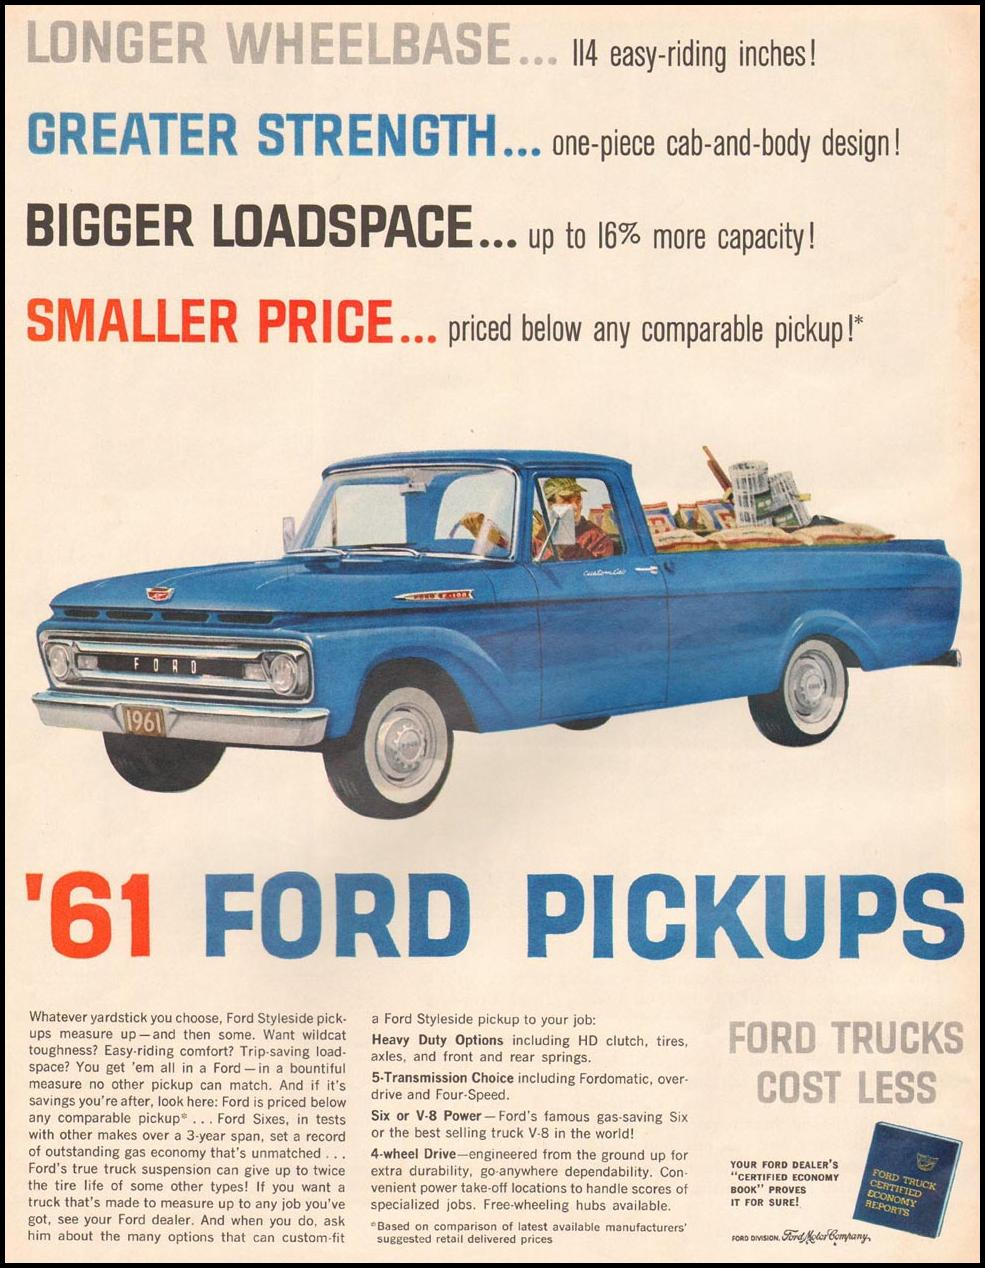 FORD AUTOMOBILES LIFE 03/31/1961 p. 9970